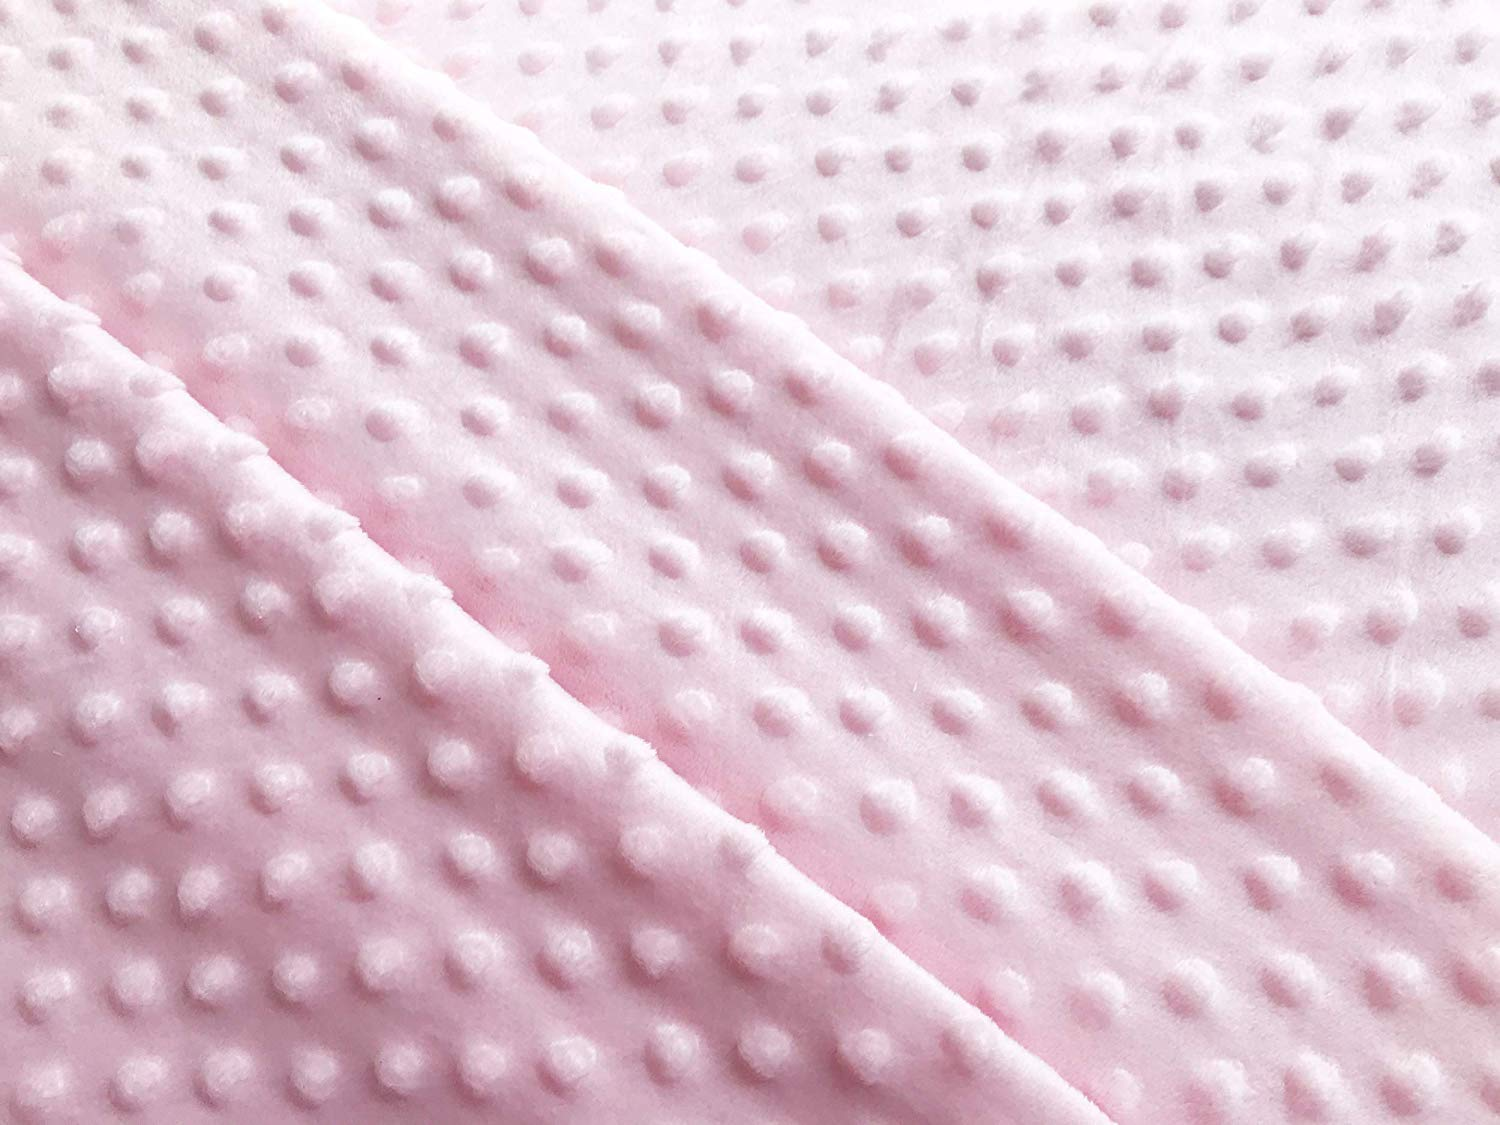 CORAL PINK Luxury Supersoft DIMPLE Cuddle Soft Fleece Fabric Material